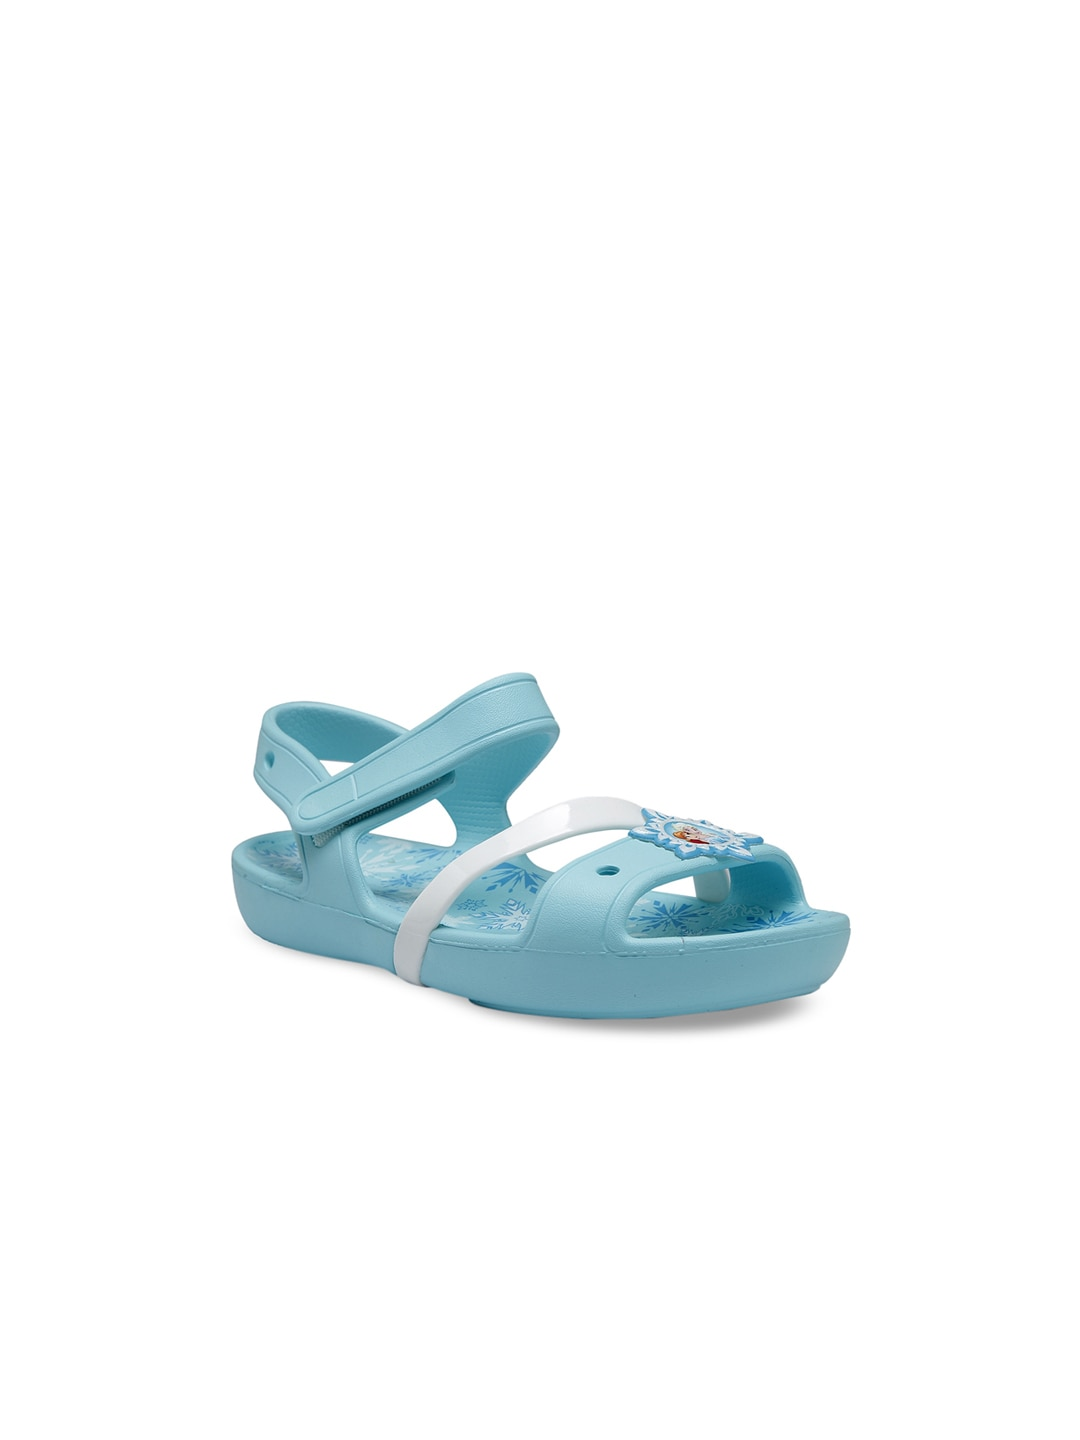 8143b087c529 Crocs Girl Sandals - Buy Crocs Girl Sandals online in India